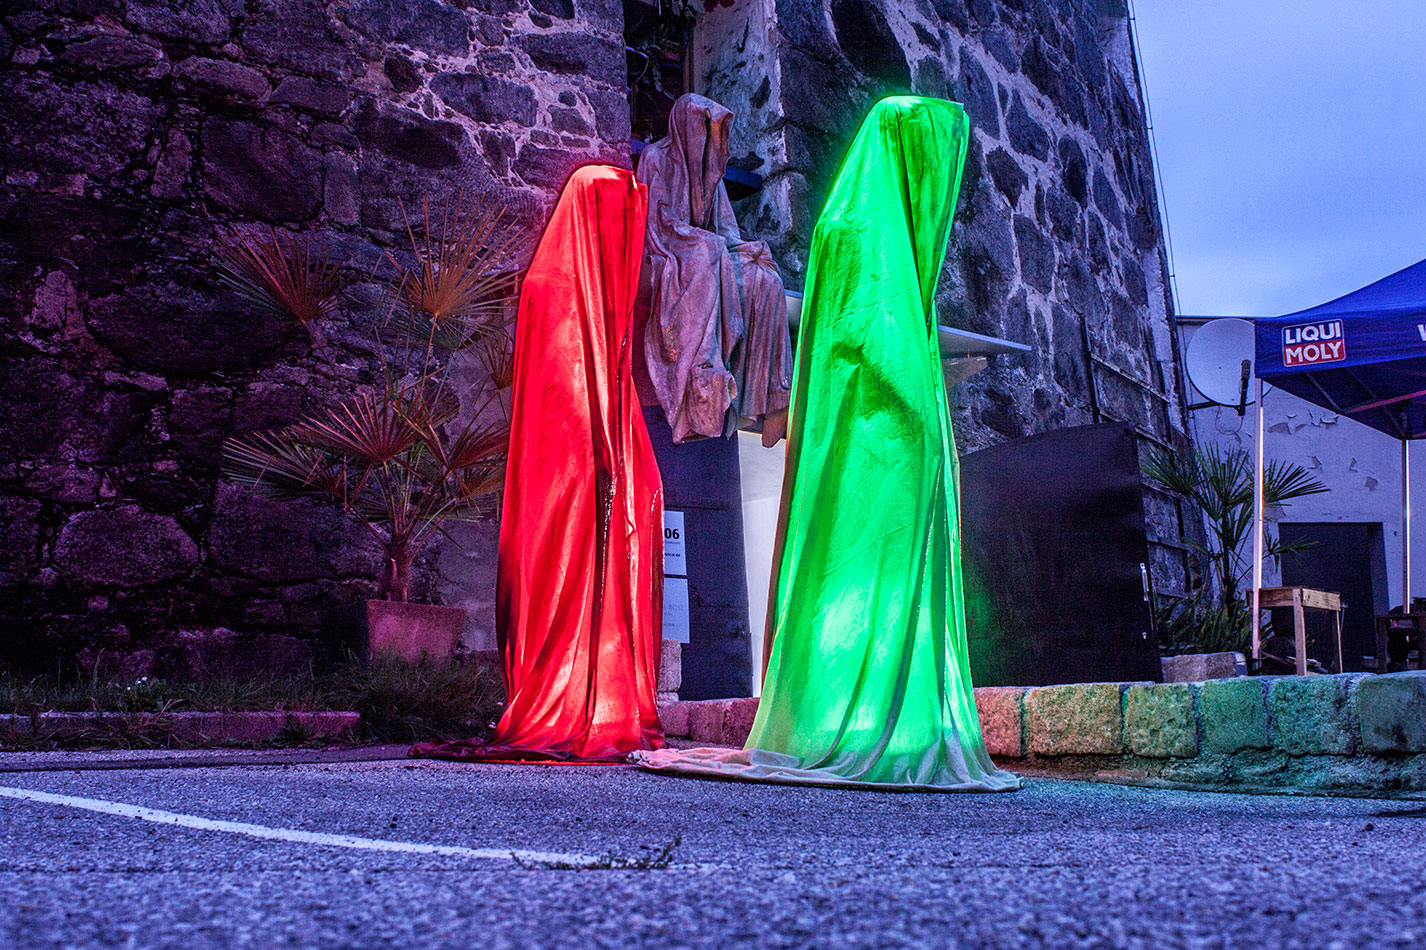 mobile-galerie-gall-toko06-linz-25er-turm-guardians-of-time-manfred-kielnhofer-contemporary-fine-art-design-sculpture-2644